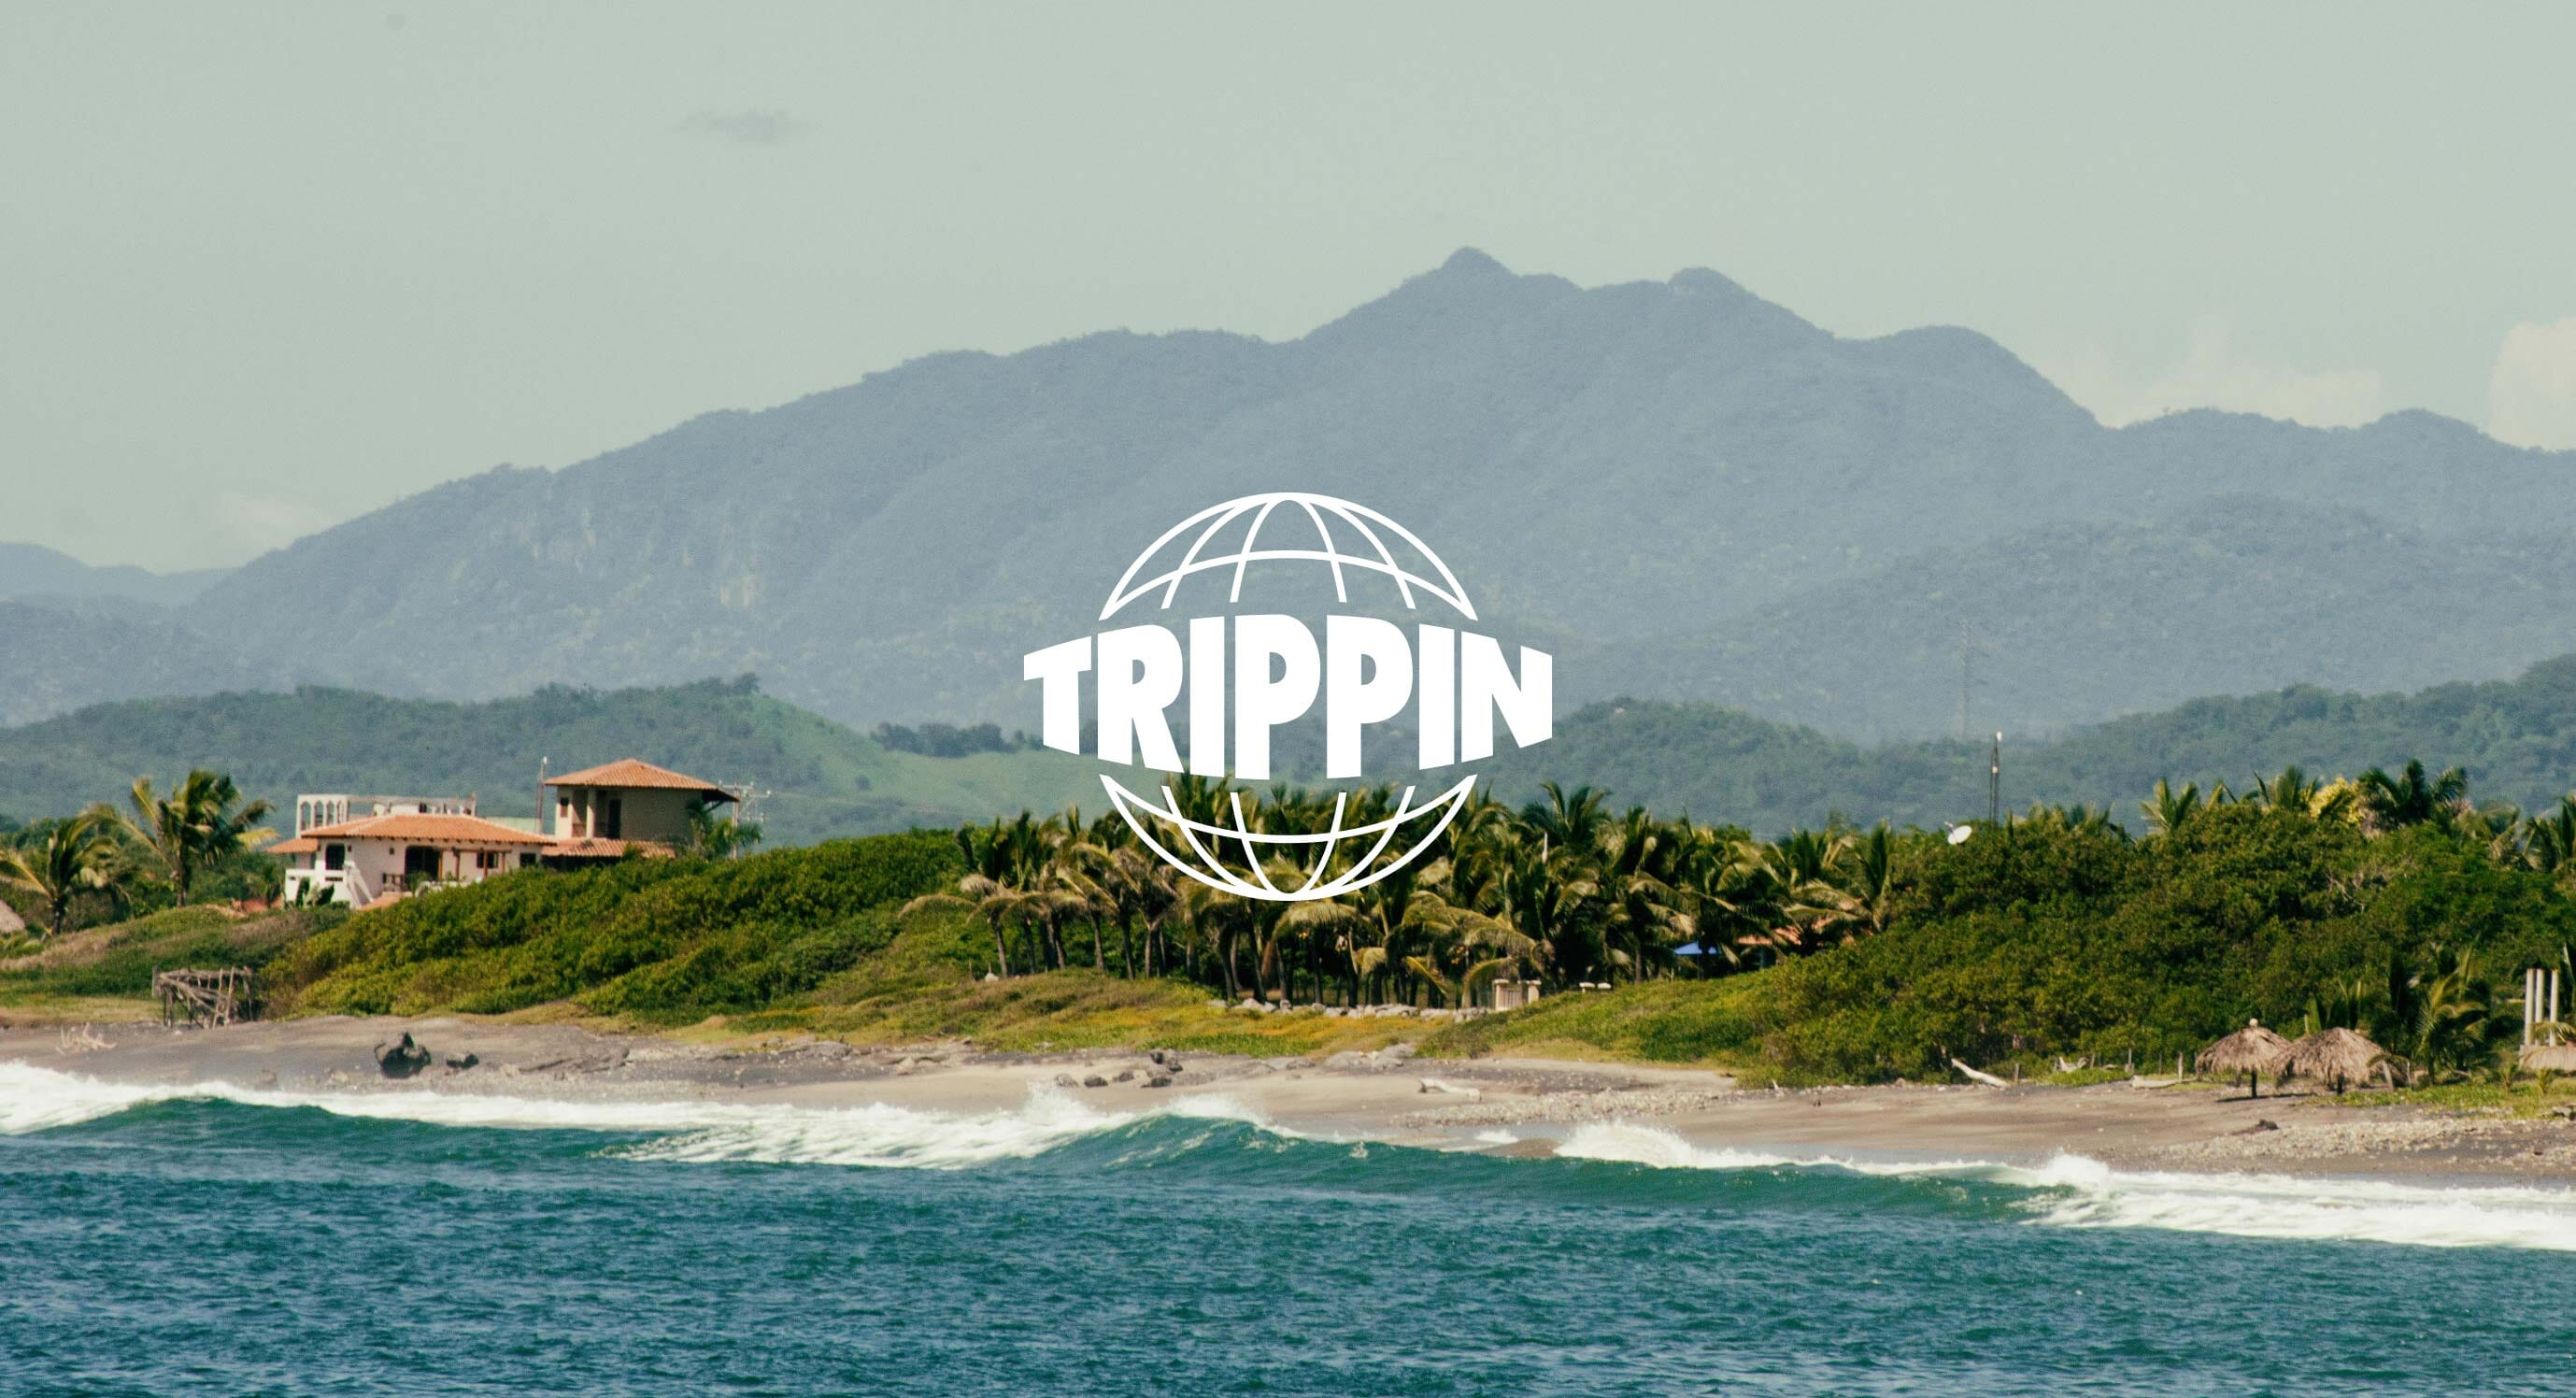 The age of authentic travel: an interview with Trippin